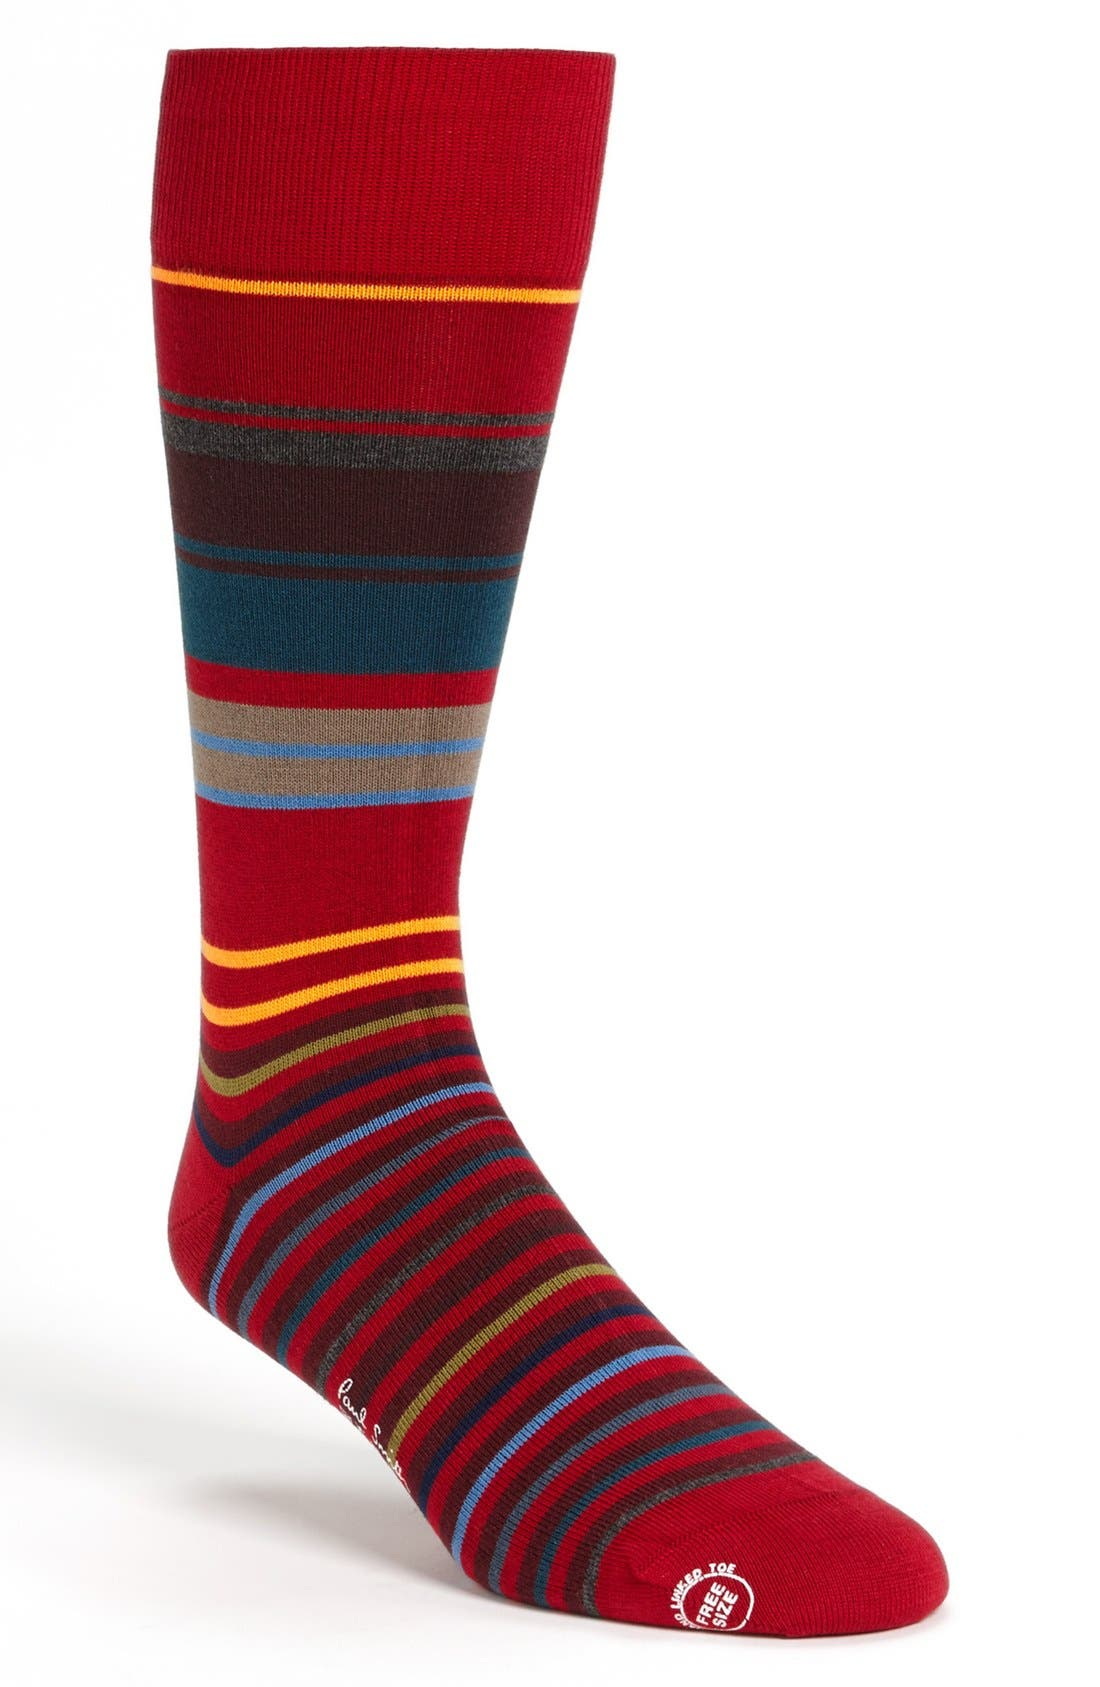 Alternate Image 1 Selected - Paul Smith Accessories Neon Stripe Socks